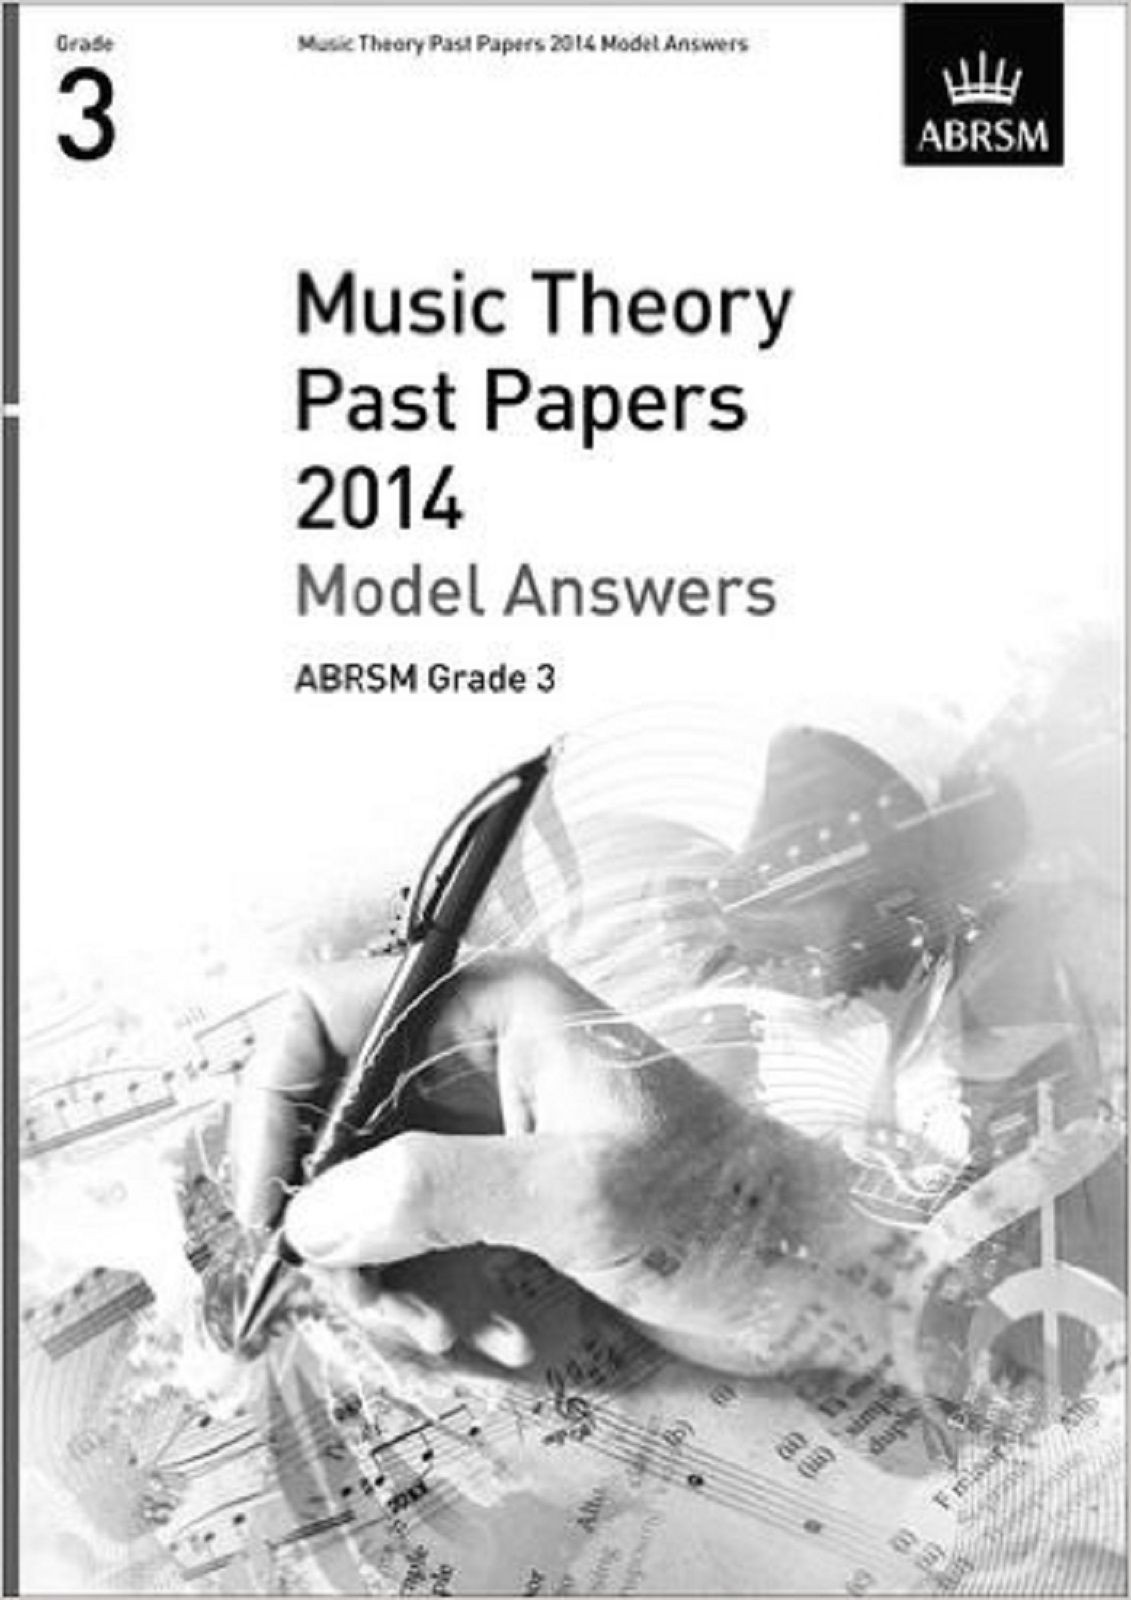 ABRSM Music Theory Past Papers 2014 Model Answers Grade 3 Book S130